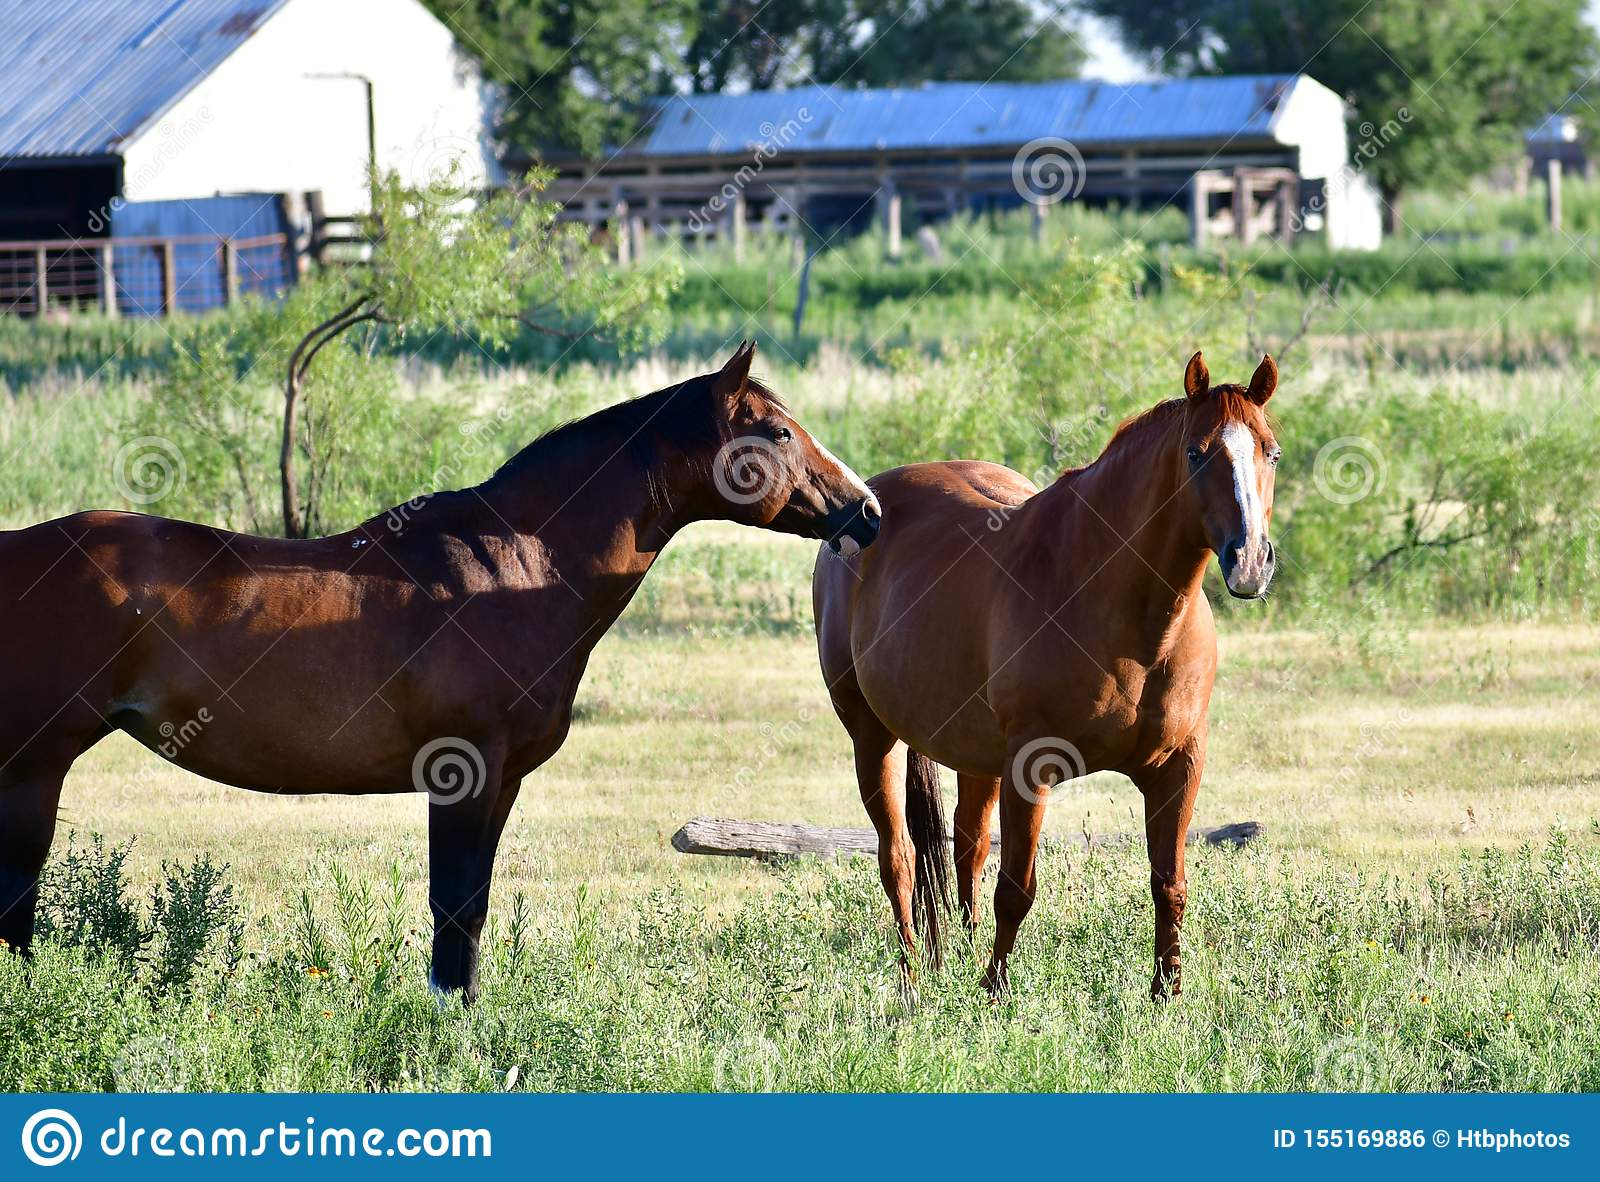 American Quarter Horse In A Field With Horse Trailer Stock Photo Image Of Ears Feeding 155169886